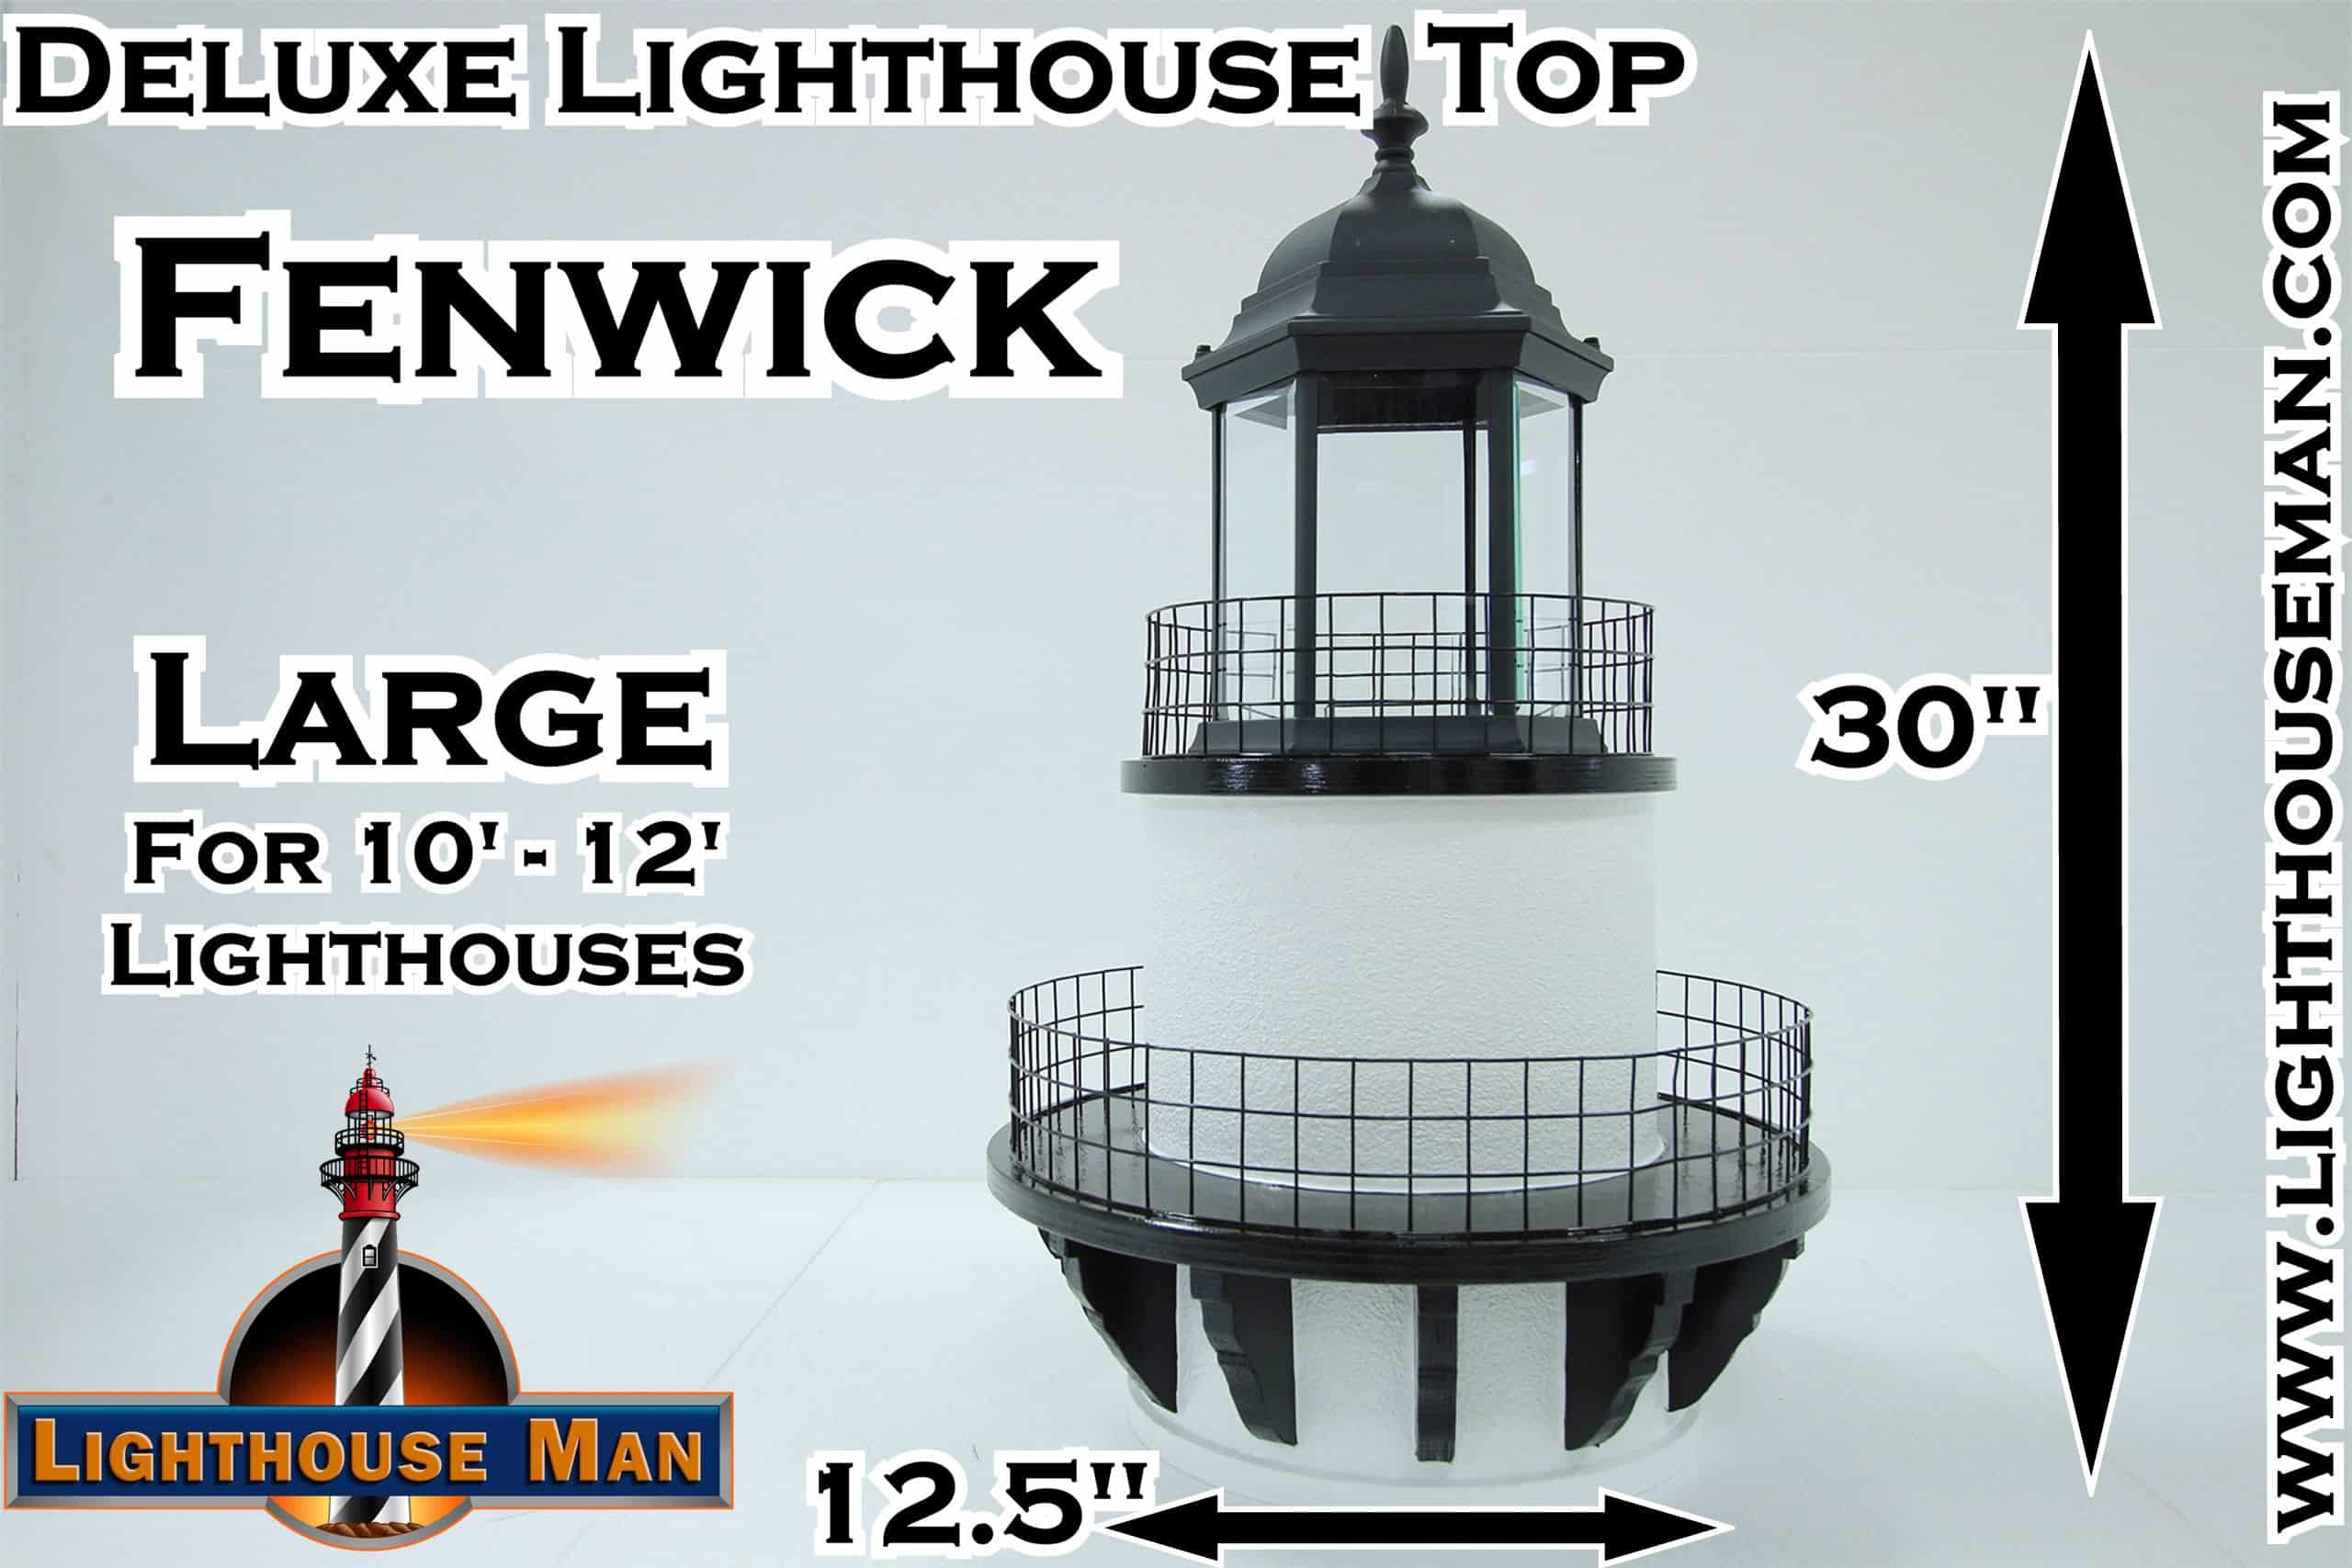 Deluxe Large Fenwick Lighthouse Top